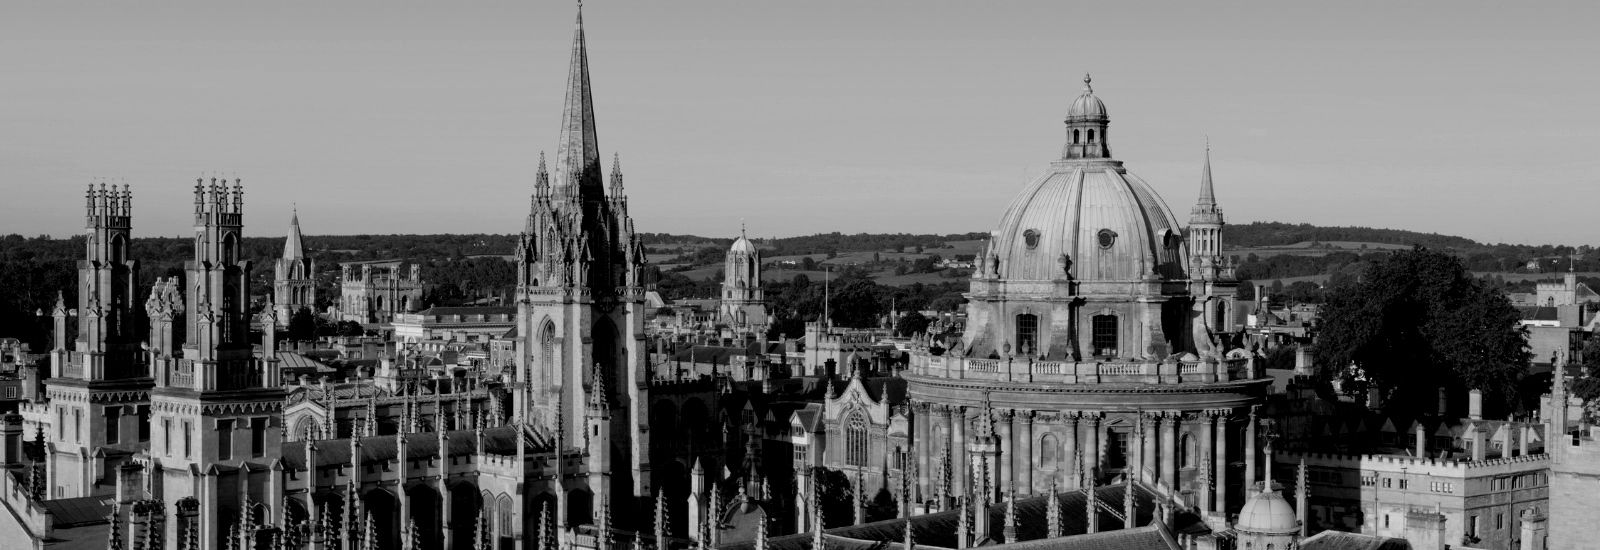 Oxford skyline in black and white